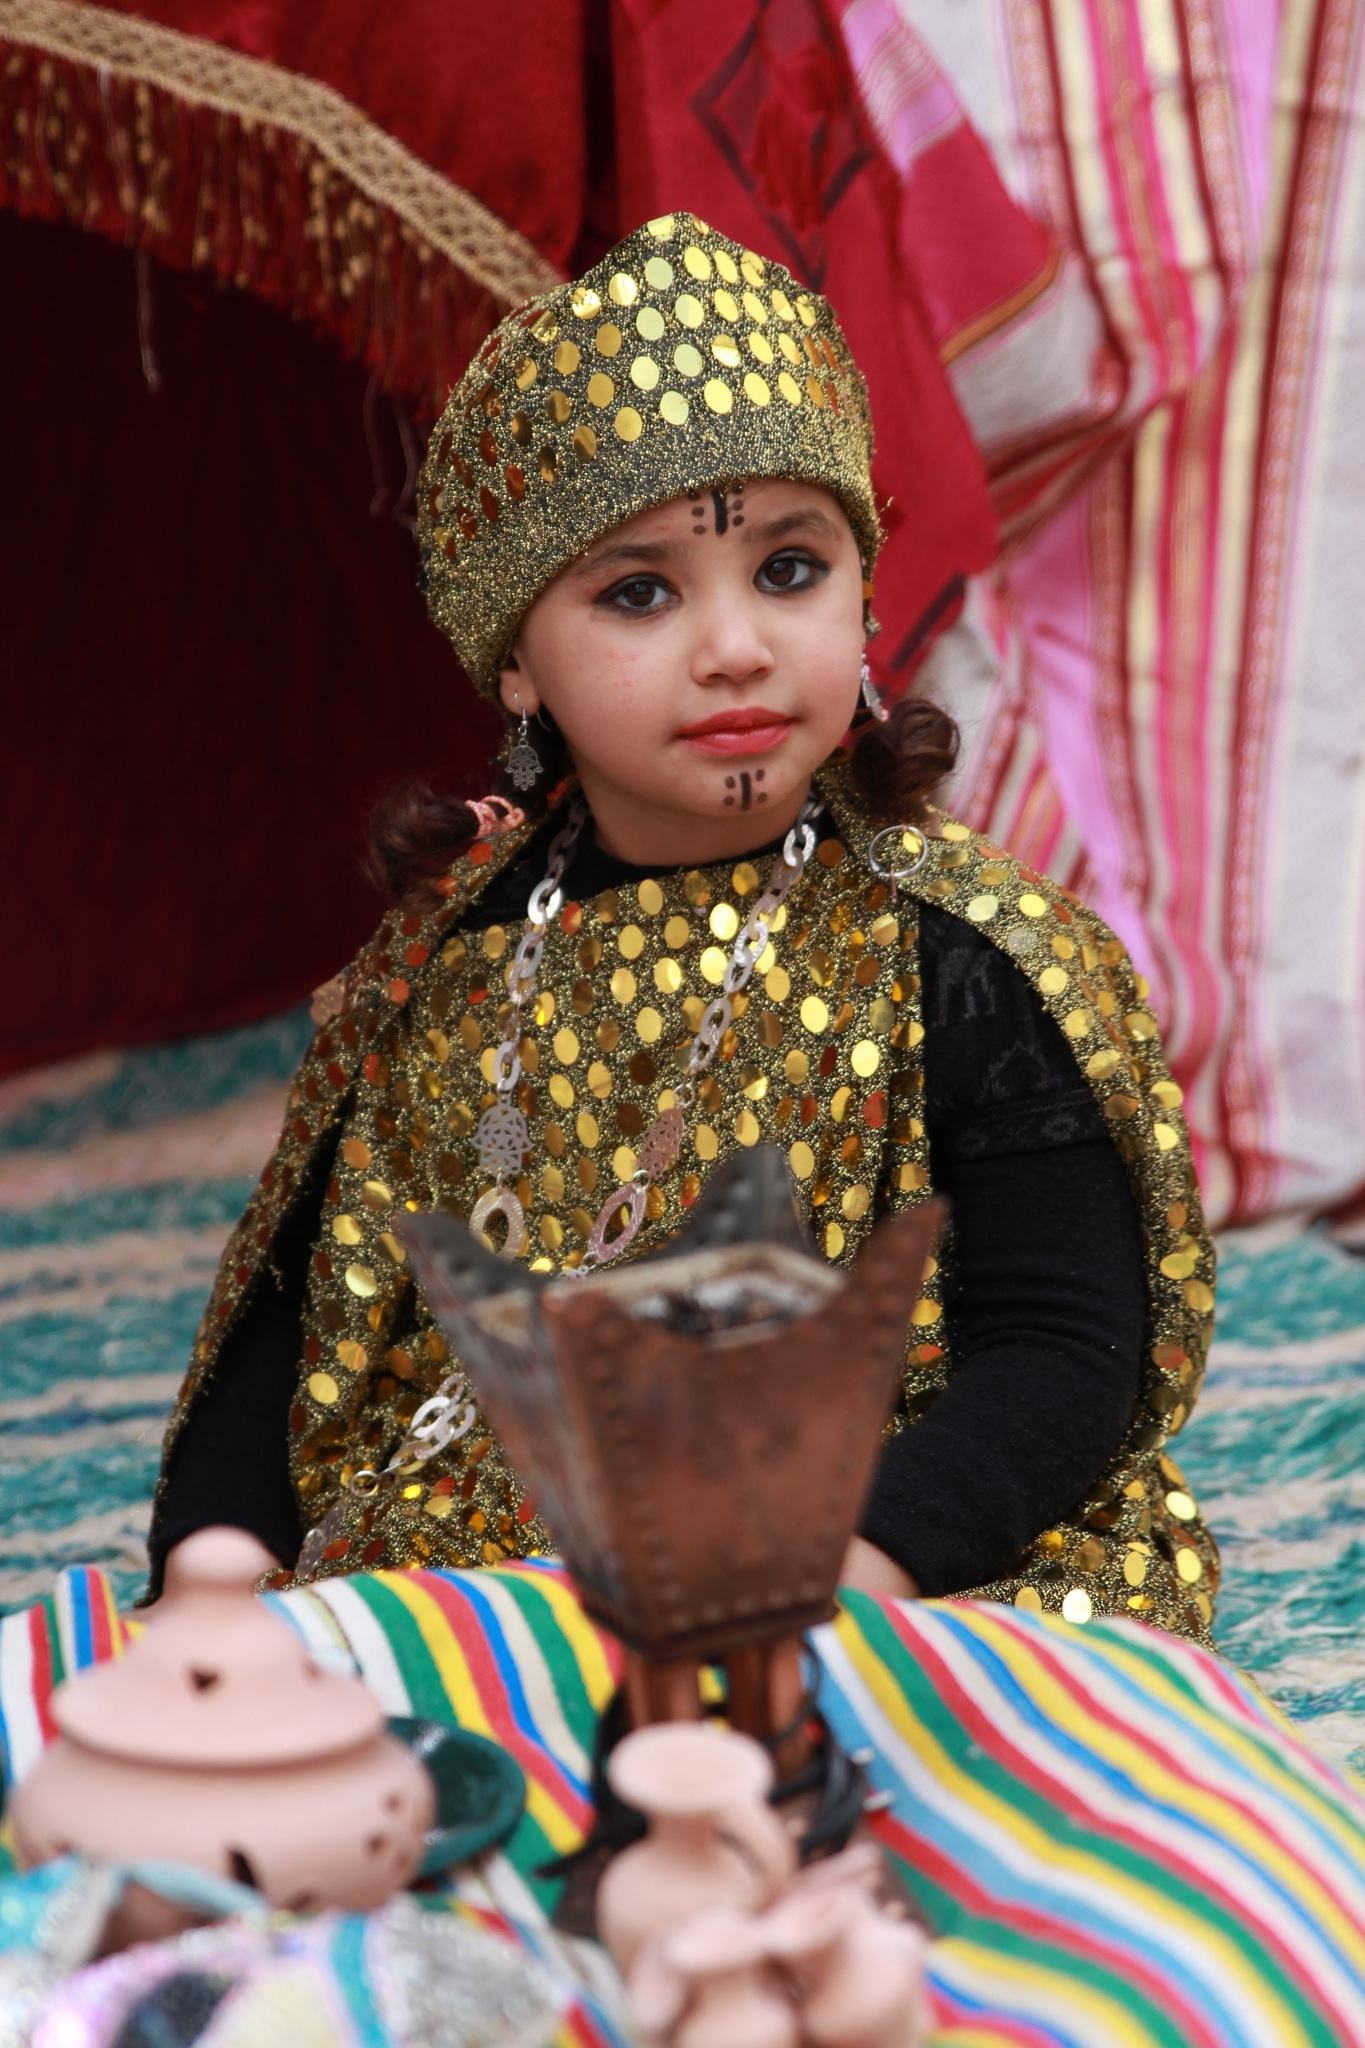 Traditional Dress of Tunisia by Mouelhi Badie